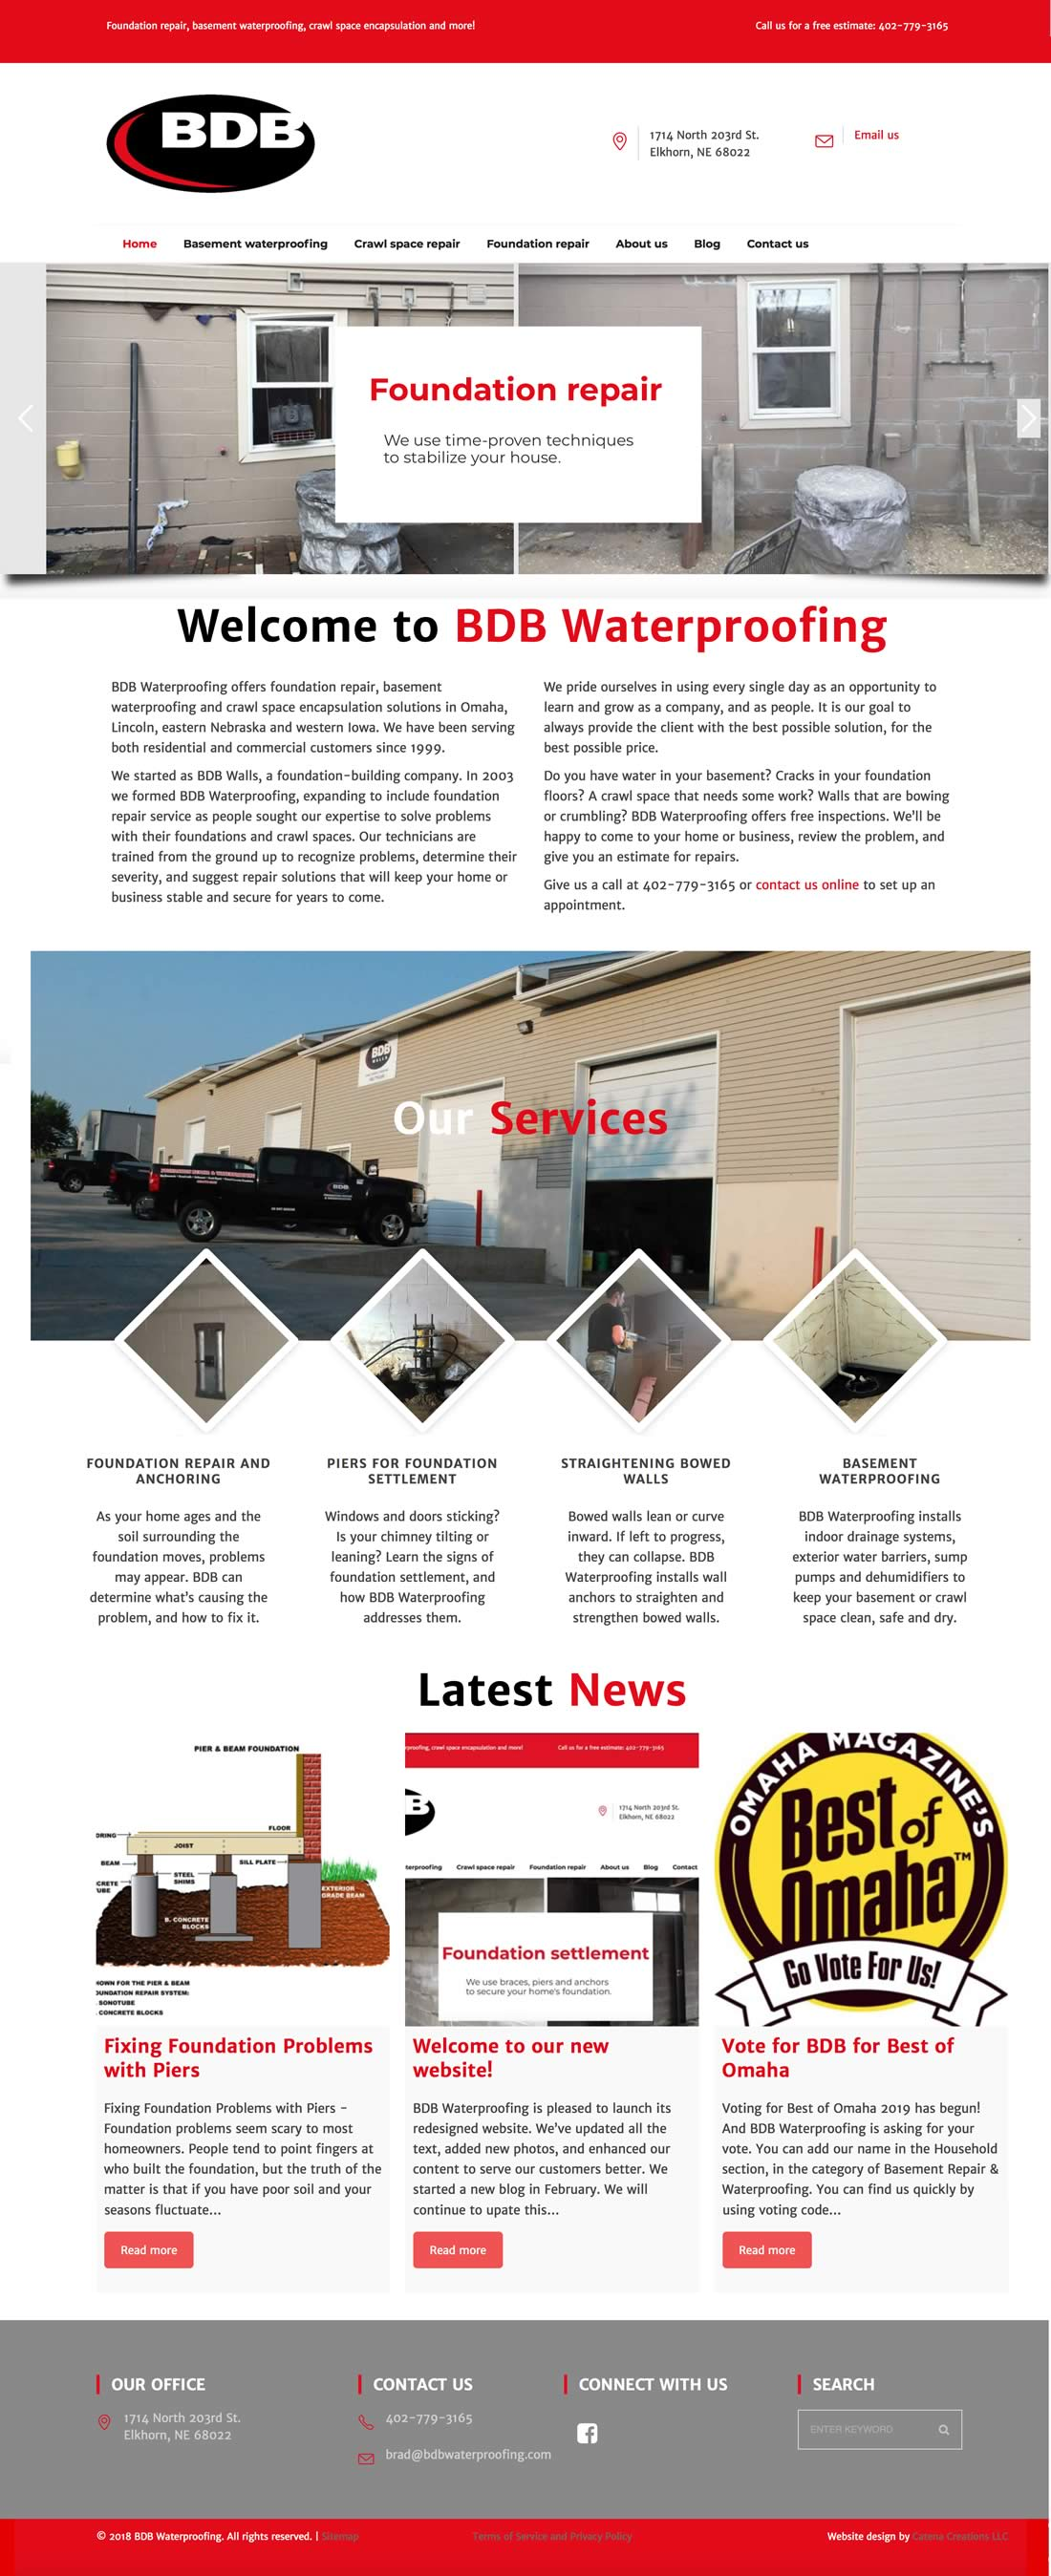 BDB Waterproofing website redesign by Catena Creations